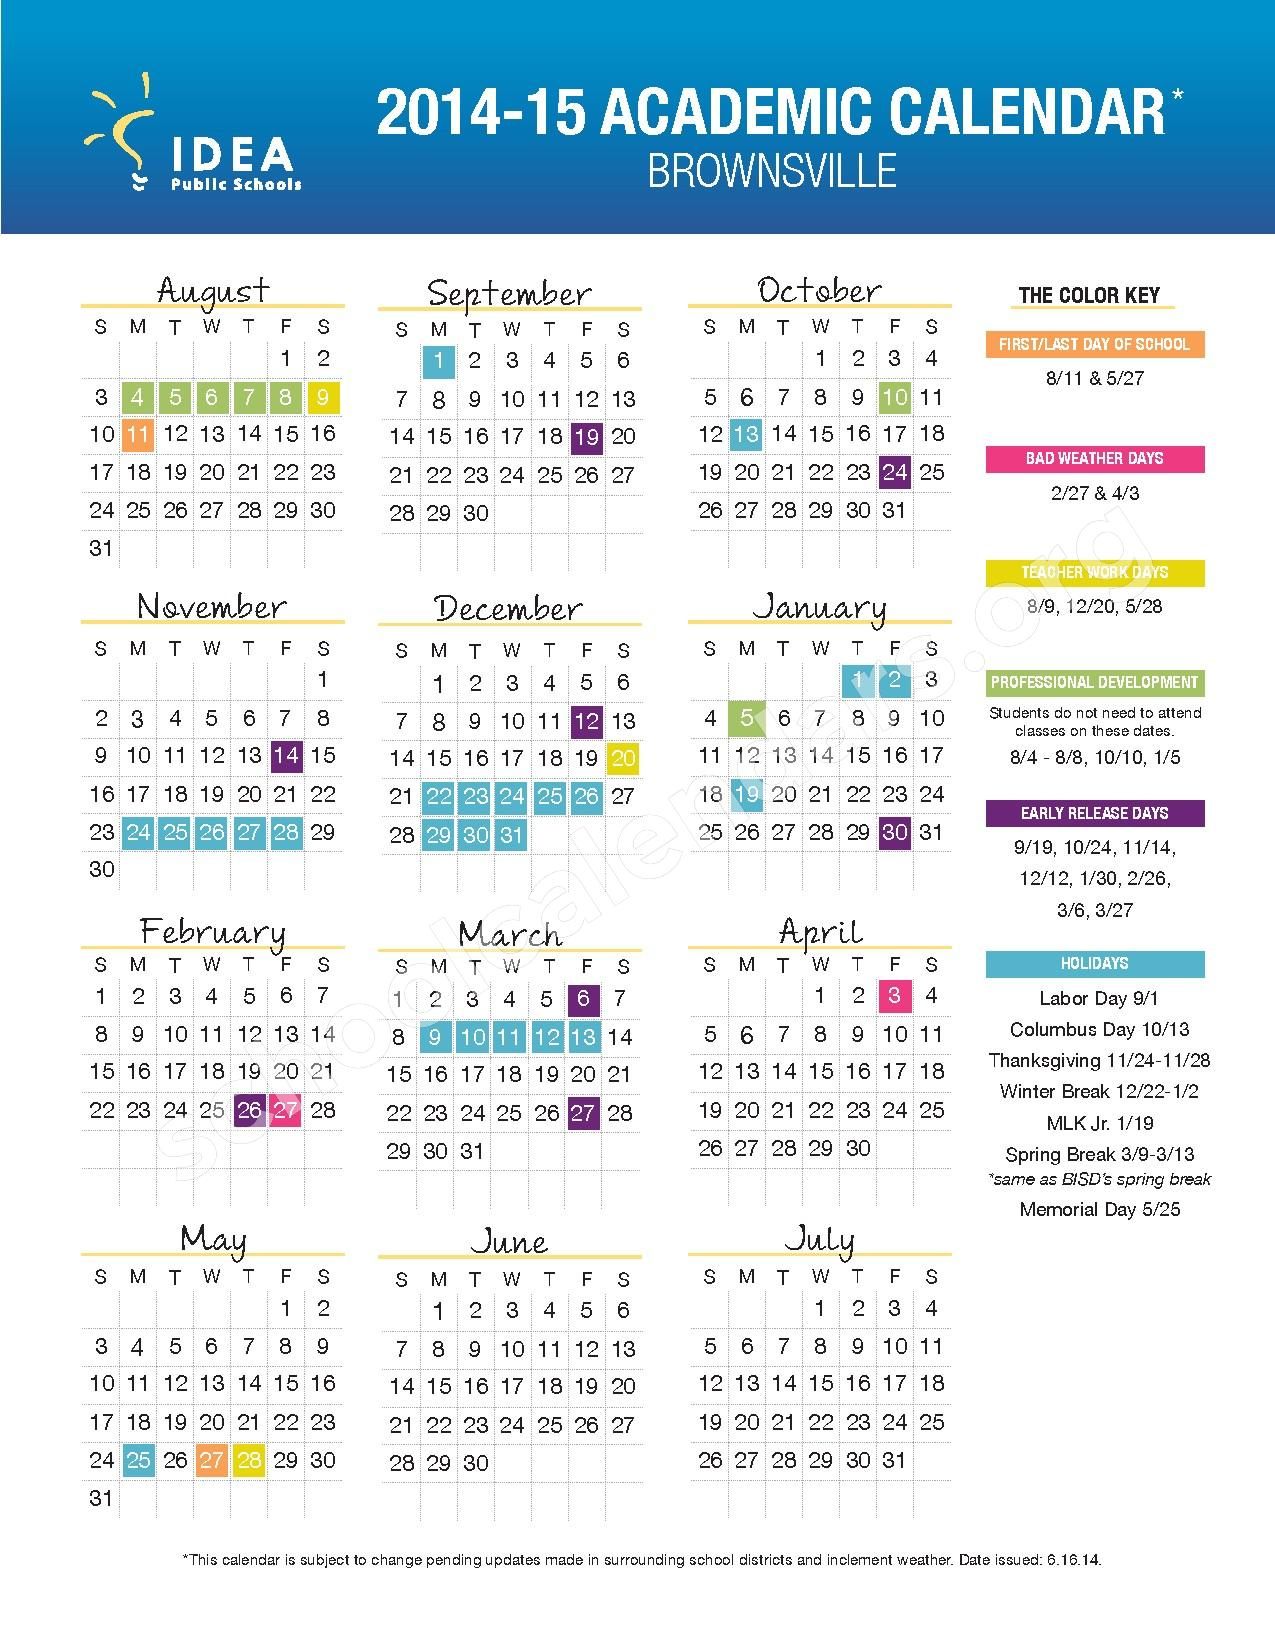 2014 2015 brownsville school calendar idea weslaco college preparatory weslaco tx